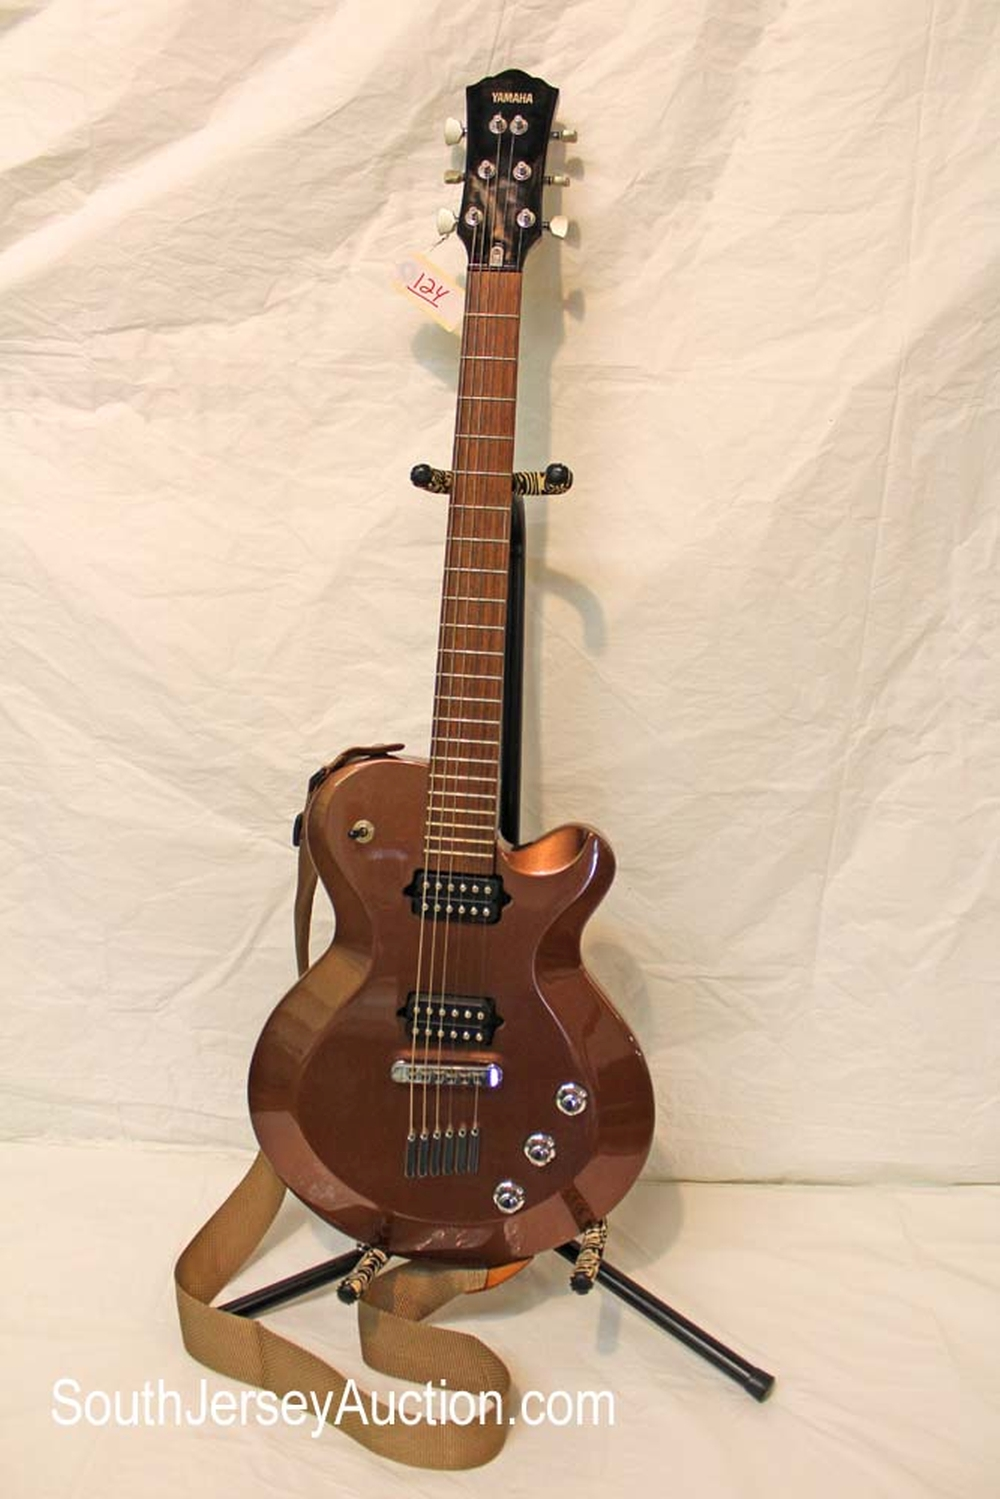 Yamaha guitar model AES820, year unknown, in the bronze finish, RARE spergel tuners, s/n #Q1x029145, model AES820, bolt on neck with strap and original pick ups, very good condition